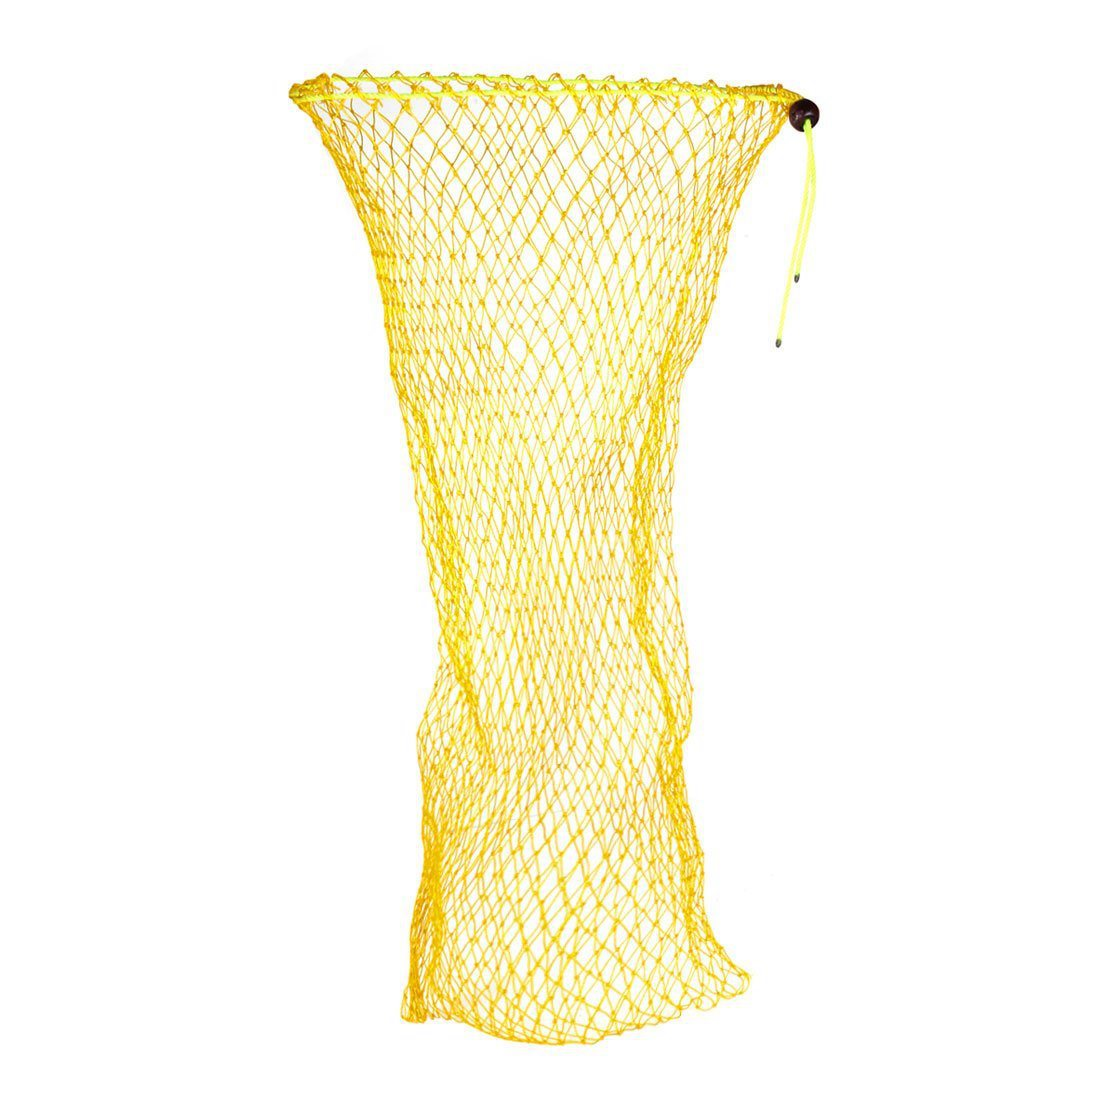 Folding Nylon Fishing Net Bag 90cm Long Hole Network 2cm x 2cm Yellow